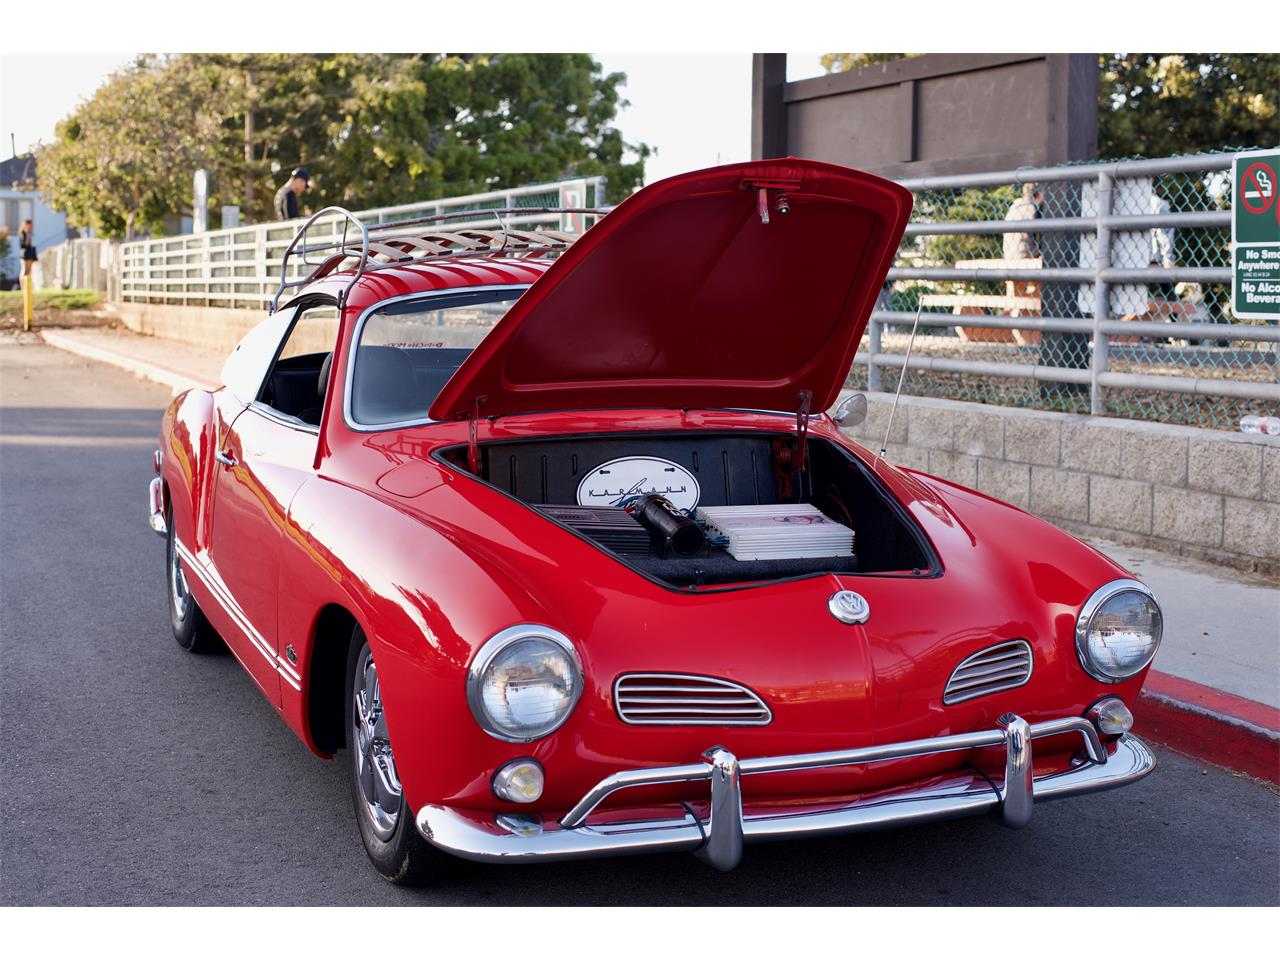 Large Picture of Classic '69 Volkswagen Karmann Ghia located in California Offered by a Private Seller - NDA6